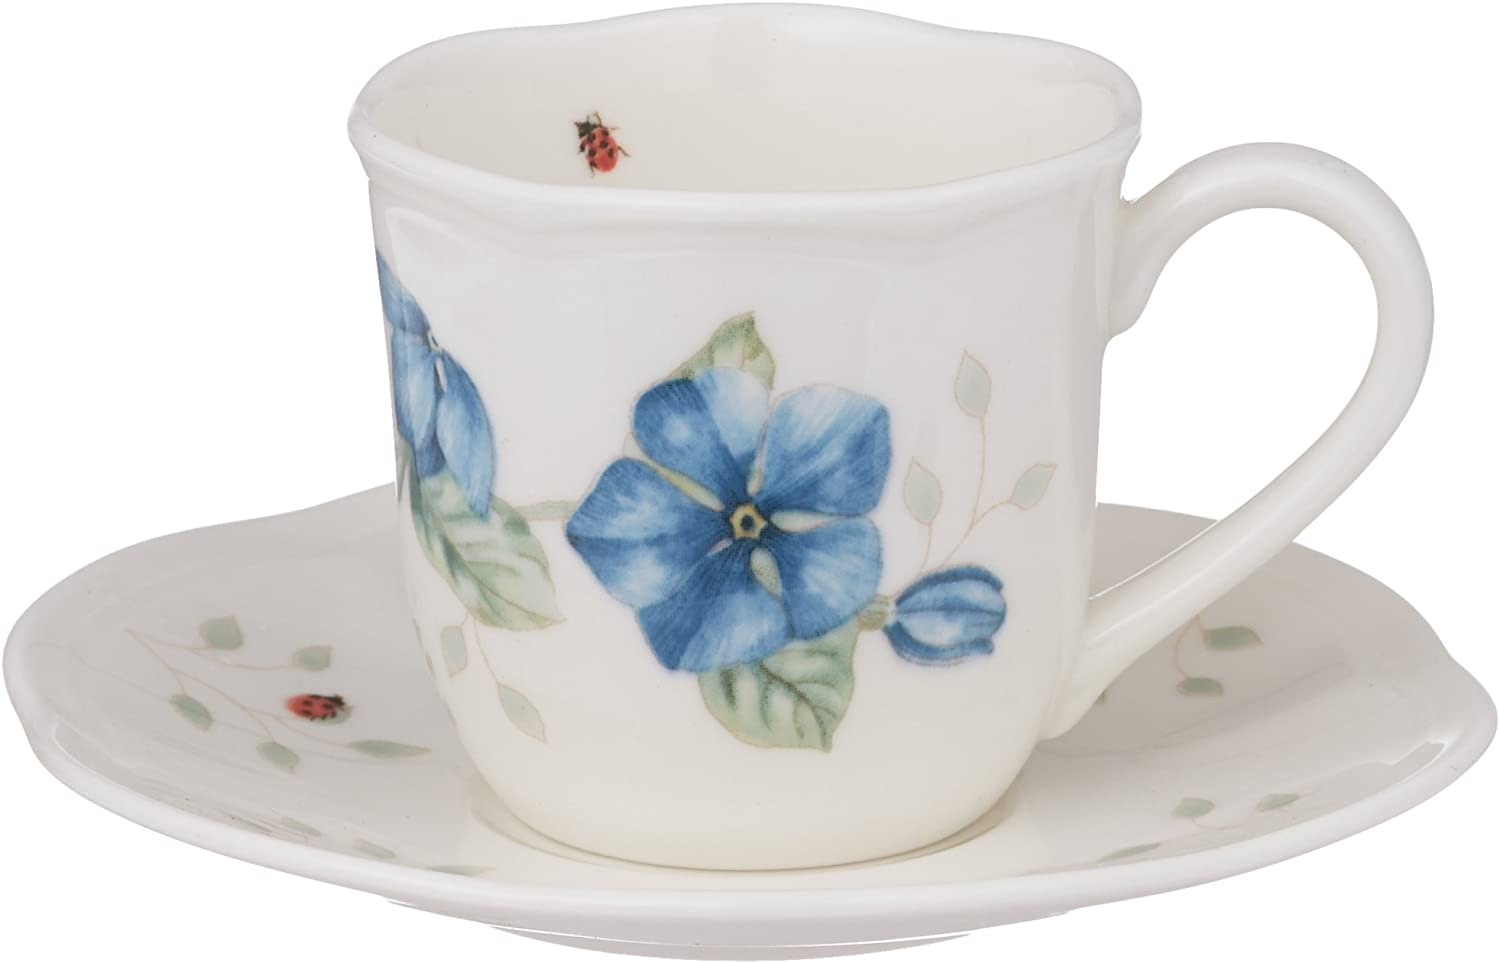 Lenox Butterfly Meadow Espresso Cup and Saucer